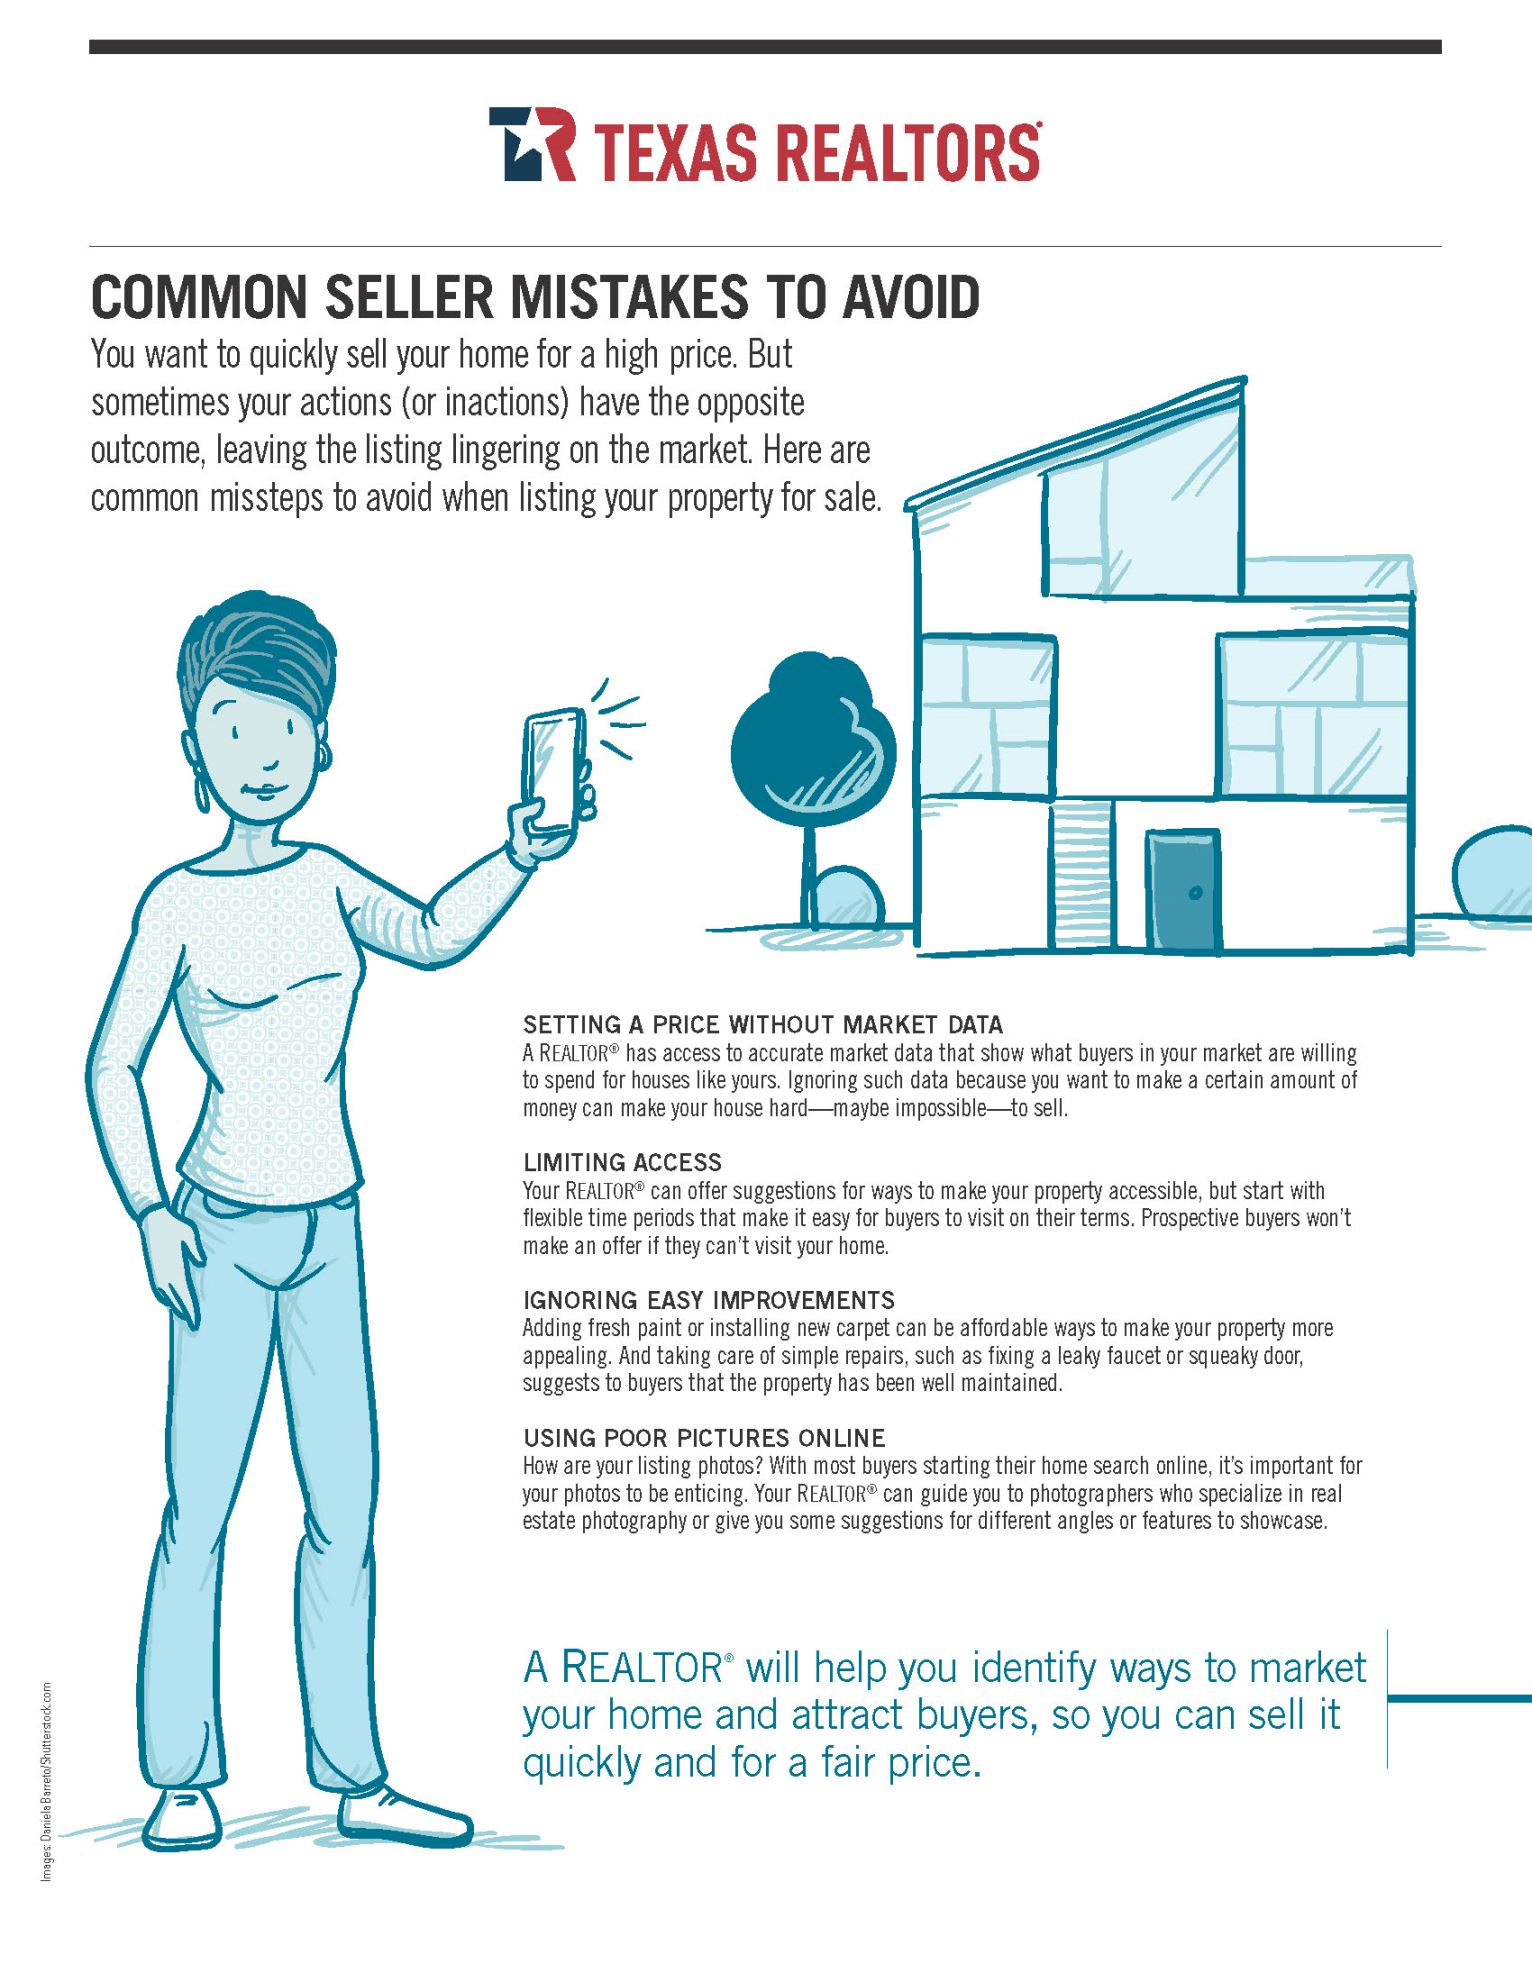 Common Seller Mistakes